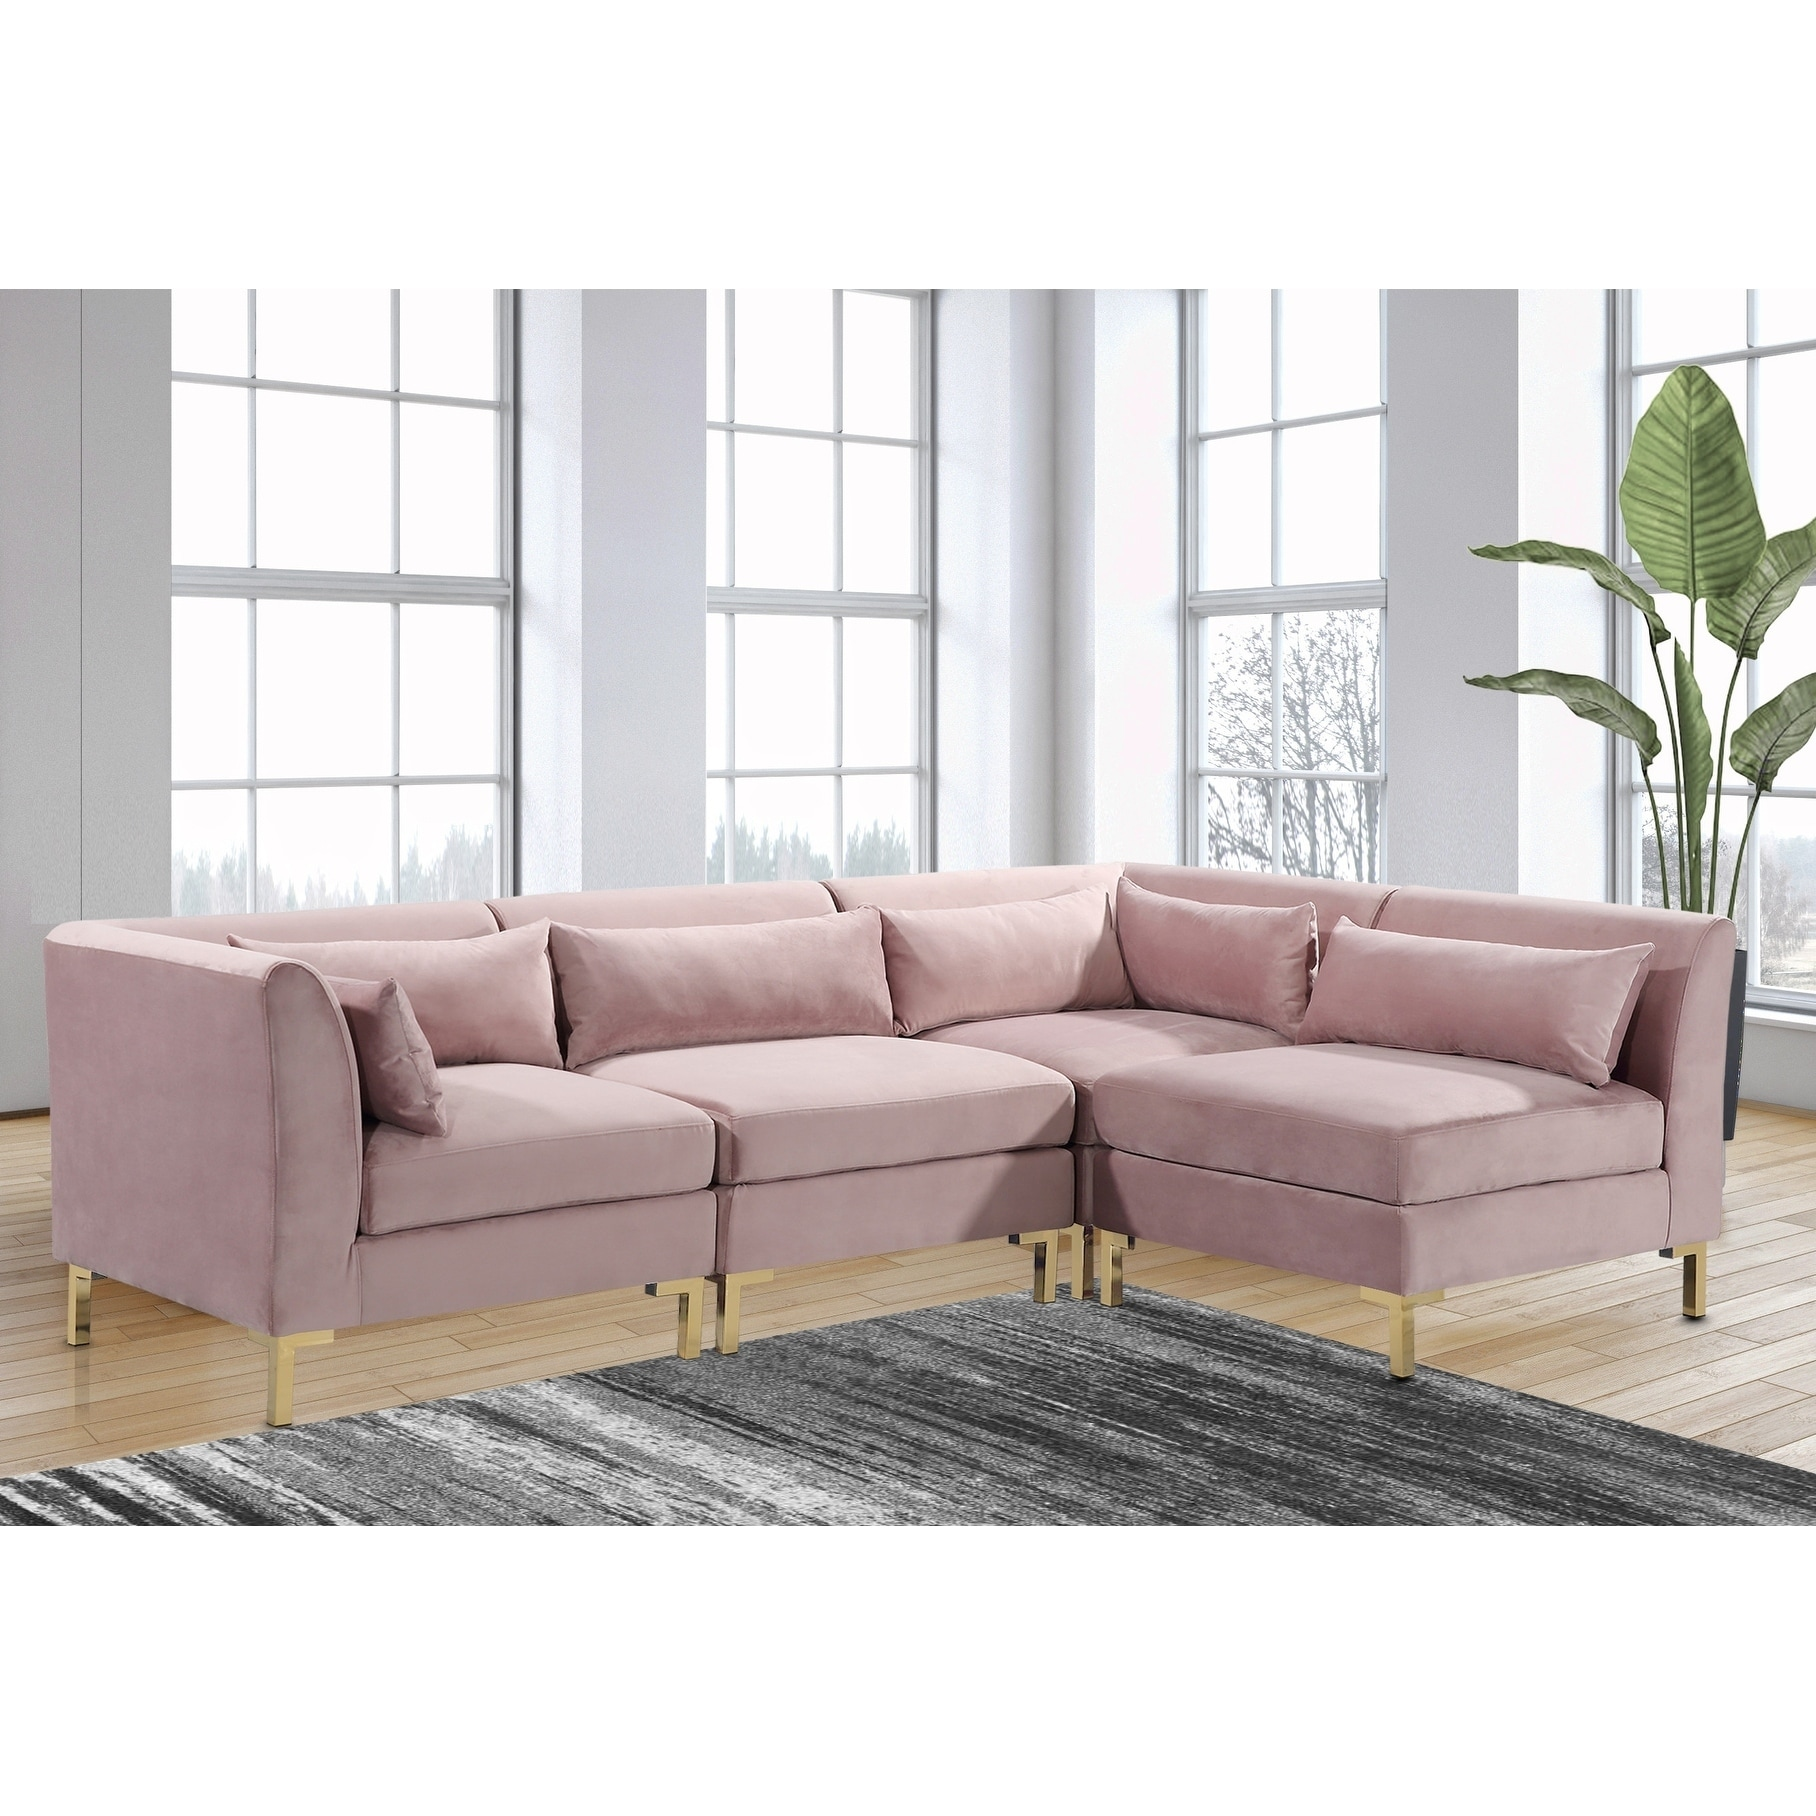 Big Sofa Fawn Buy Taupe Sectional Sofas Online At Overstock Our Best Living